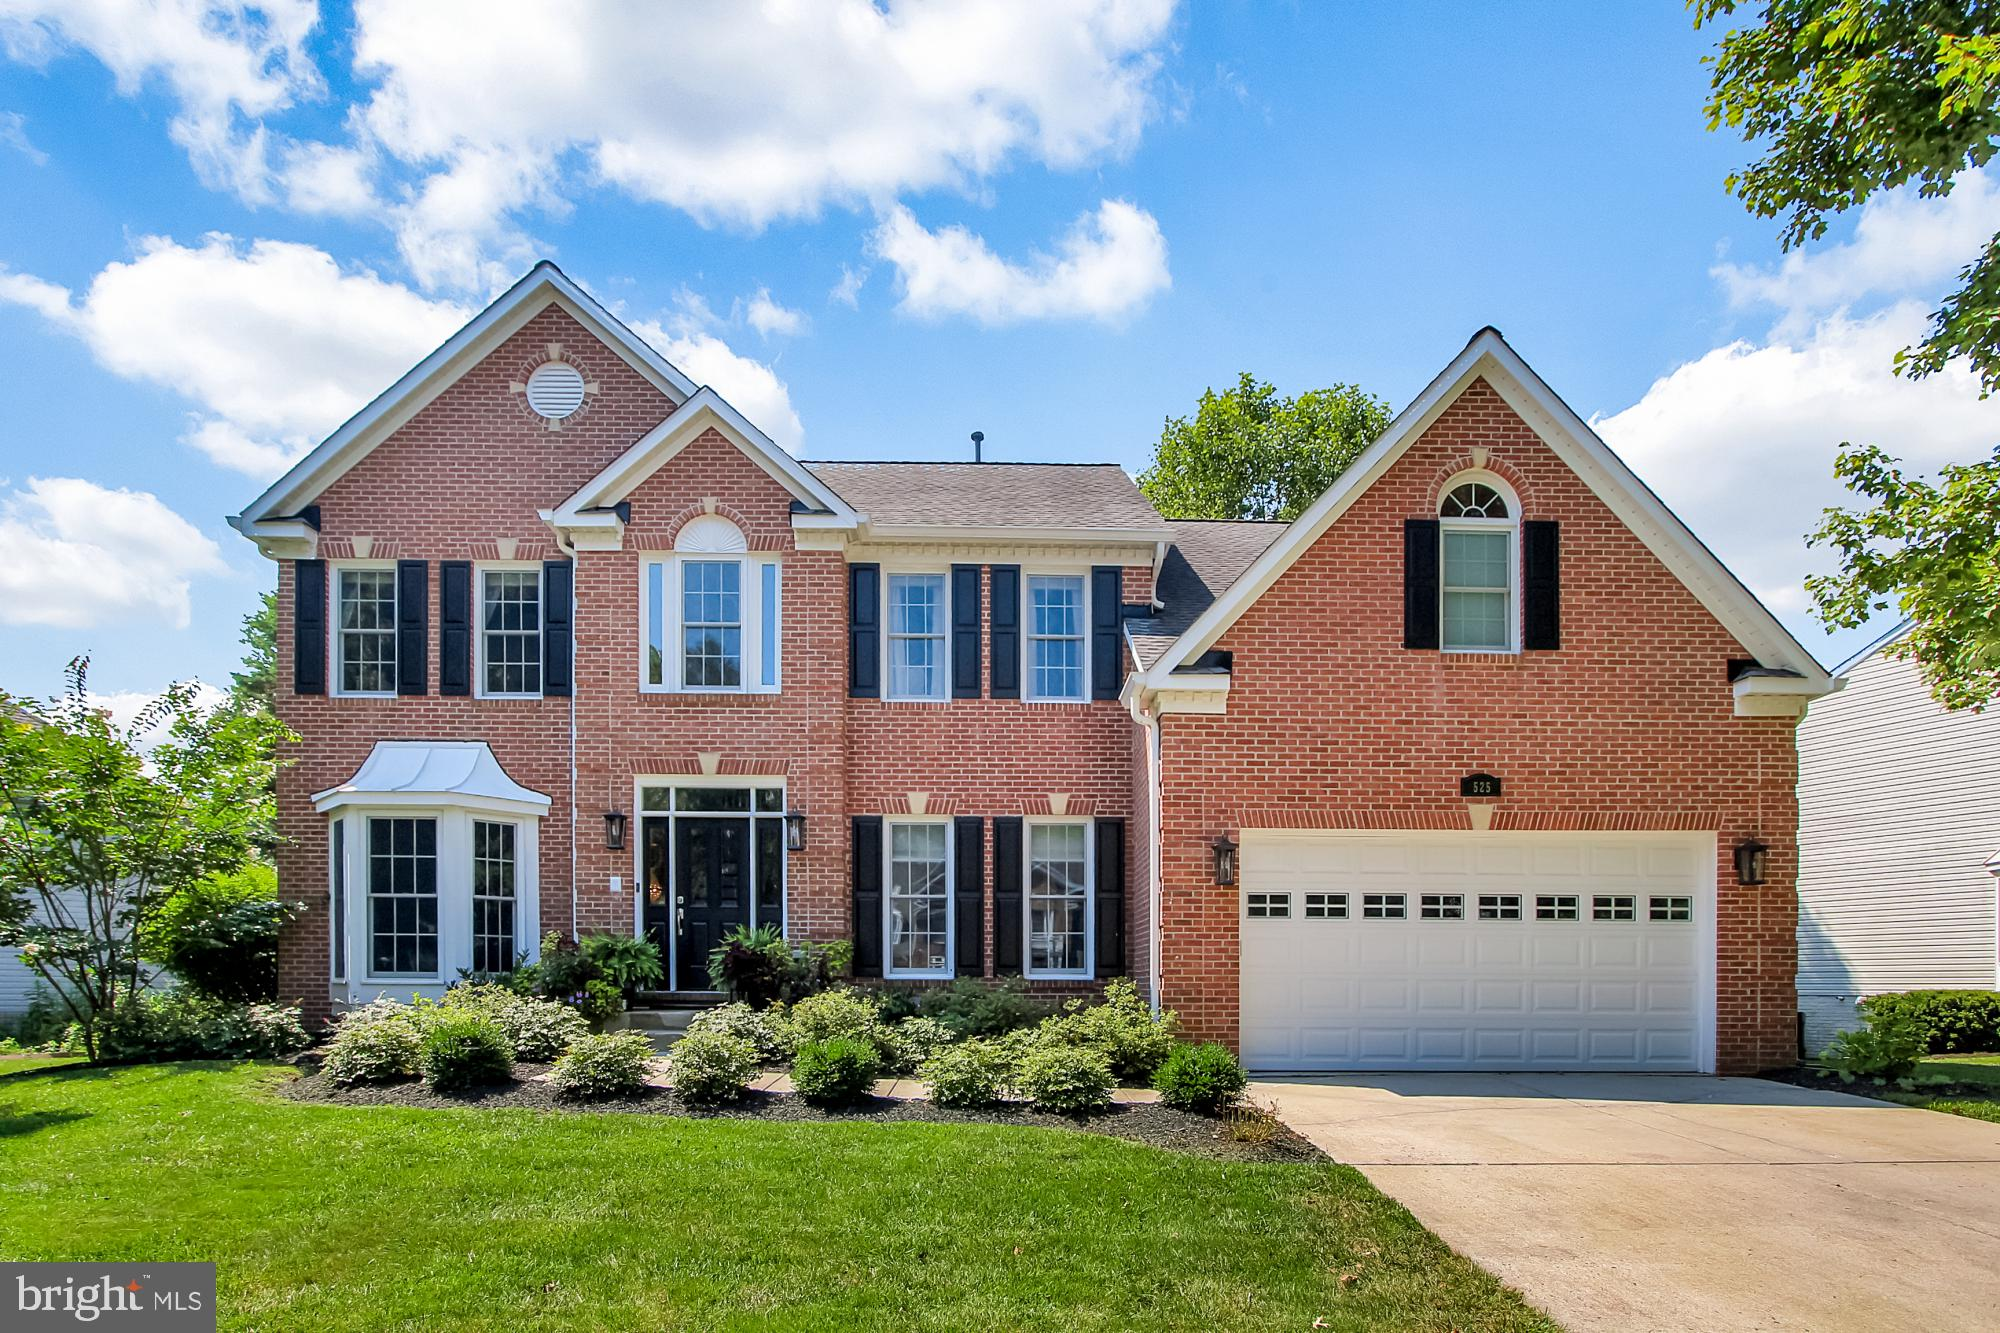 Absolutely Gorgeous 5 Bedroom 3.5 Bath Brick Front Colonial in Kings Charter, situated on a quiet tree lined lot.   Loaded with updates - windows, door, flooring, paint, Roof 2012, recessed lighting, mudroom, laundry room, mater bedroom, master bathroom, flooring, molding, the list goes on! Truly a must see.  Don't miss out on this incredible home!